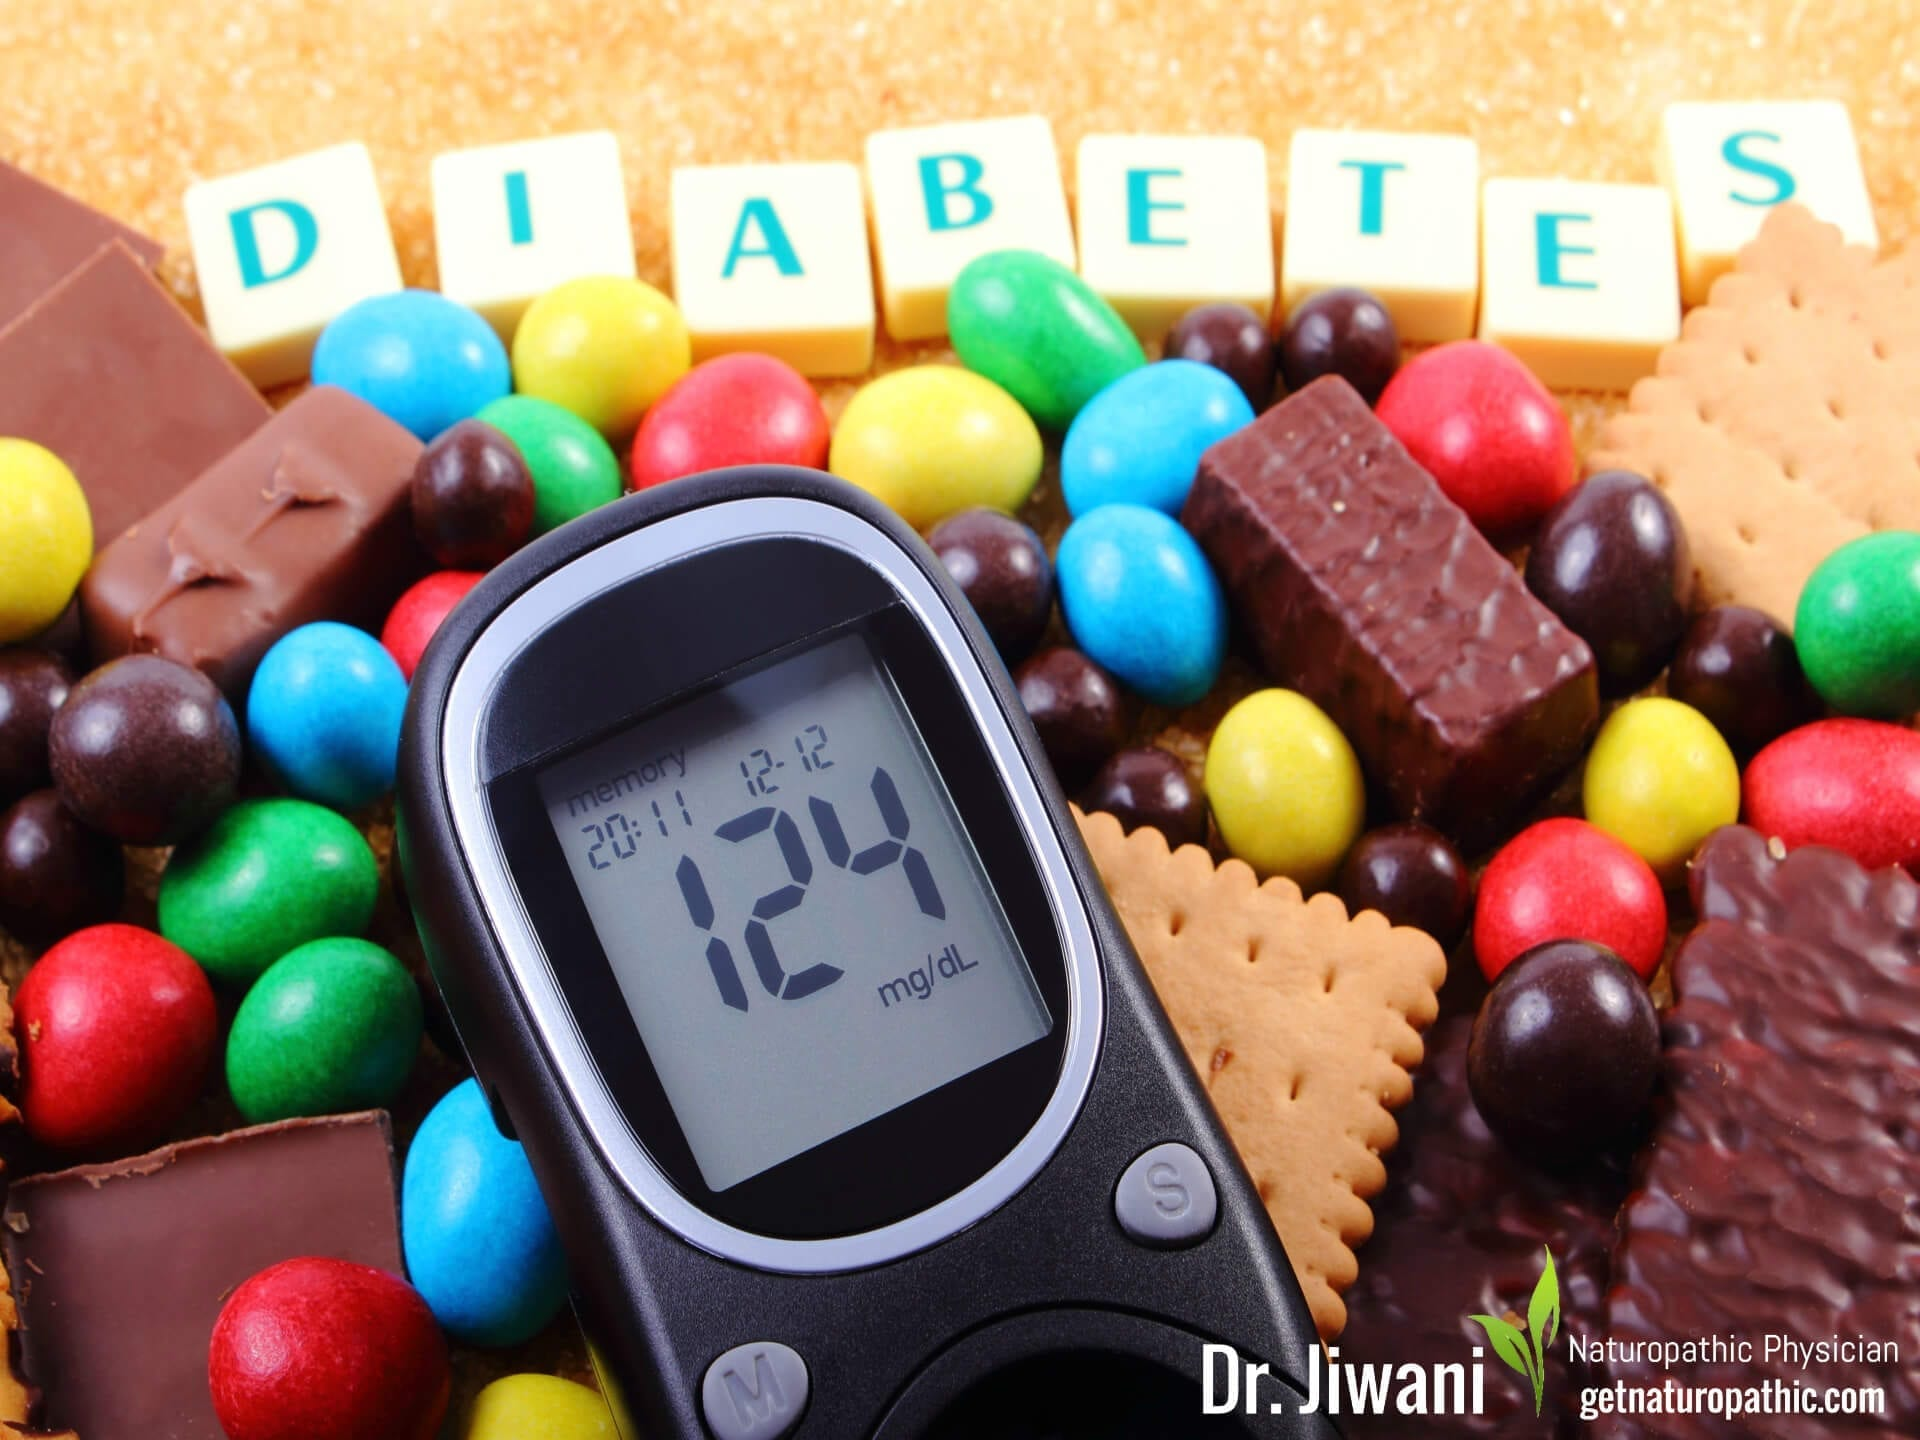 DrJiwani Diabetes Sugar the Sweet Poison The Alarming Ways Sugar Damages Your Body & Brain* | Dr. Jiwani's Naturopathic Nuggets Blog